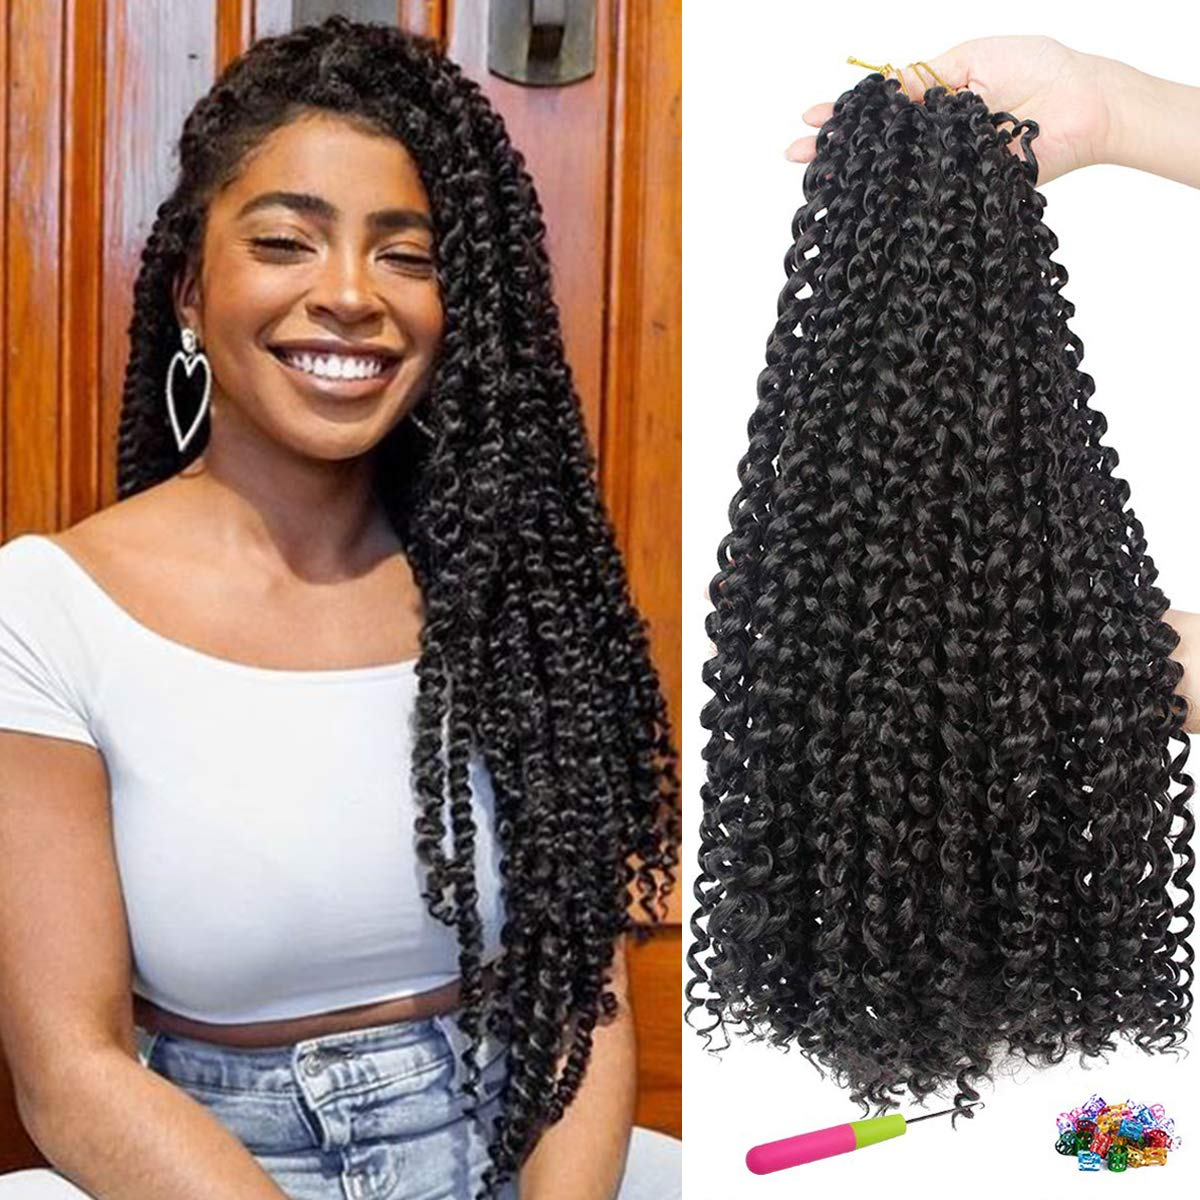 Amazon Com 7 Packs Passion Twist Hair 18 Inches Water Wave Crochet Hair Braids For Butterfly Locs Natural Black Passion Twists Braiding Hair Curly Bohemian Locs Synthetic Hair Extensions 16strands Pack 1b Beauty